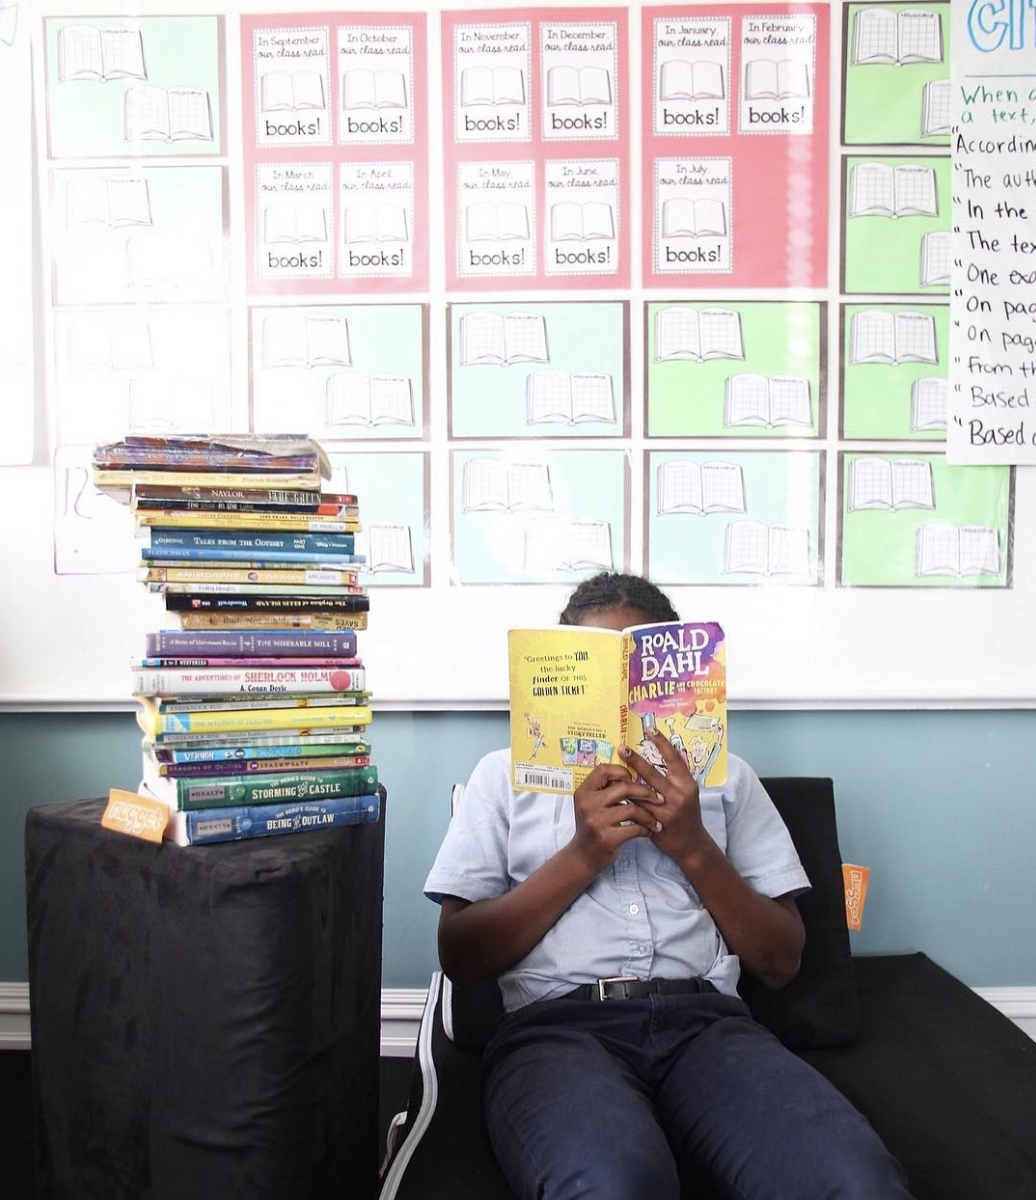 Student sitting on a Nugget, reading a book, with a stack of books next to them placed on top of a Nugget pillow